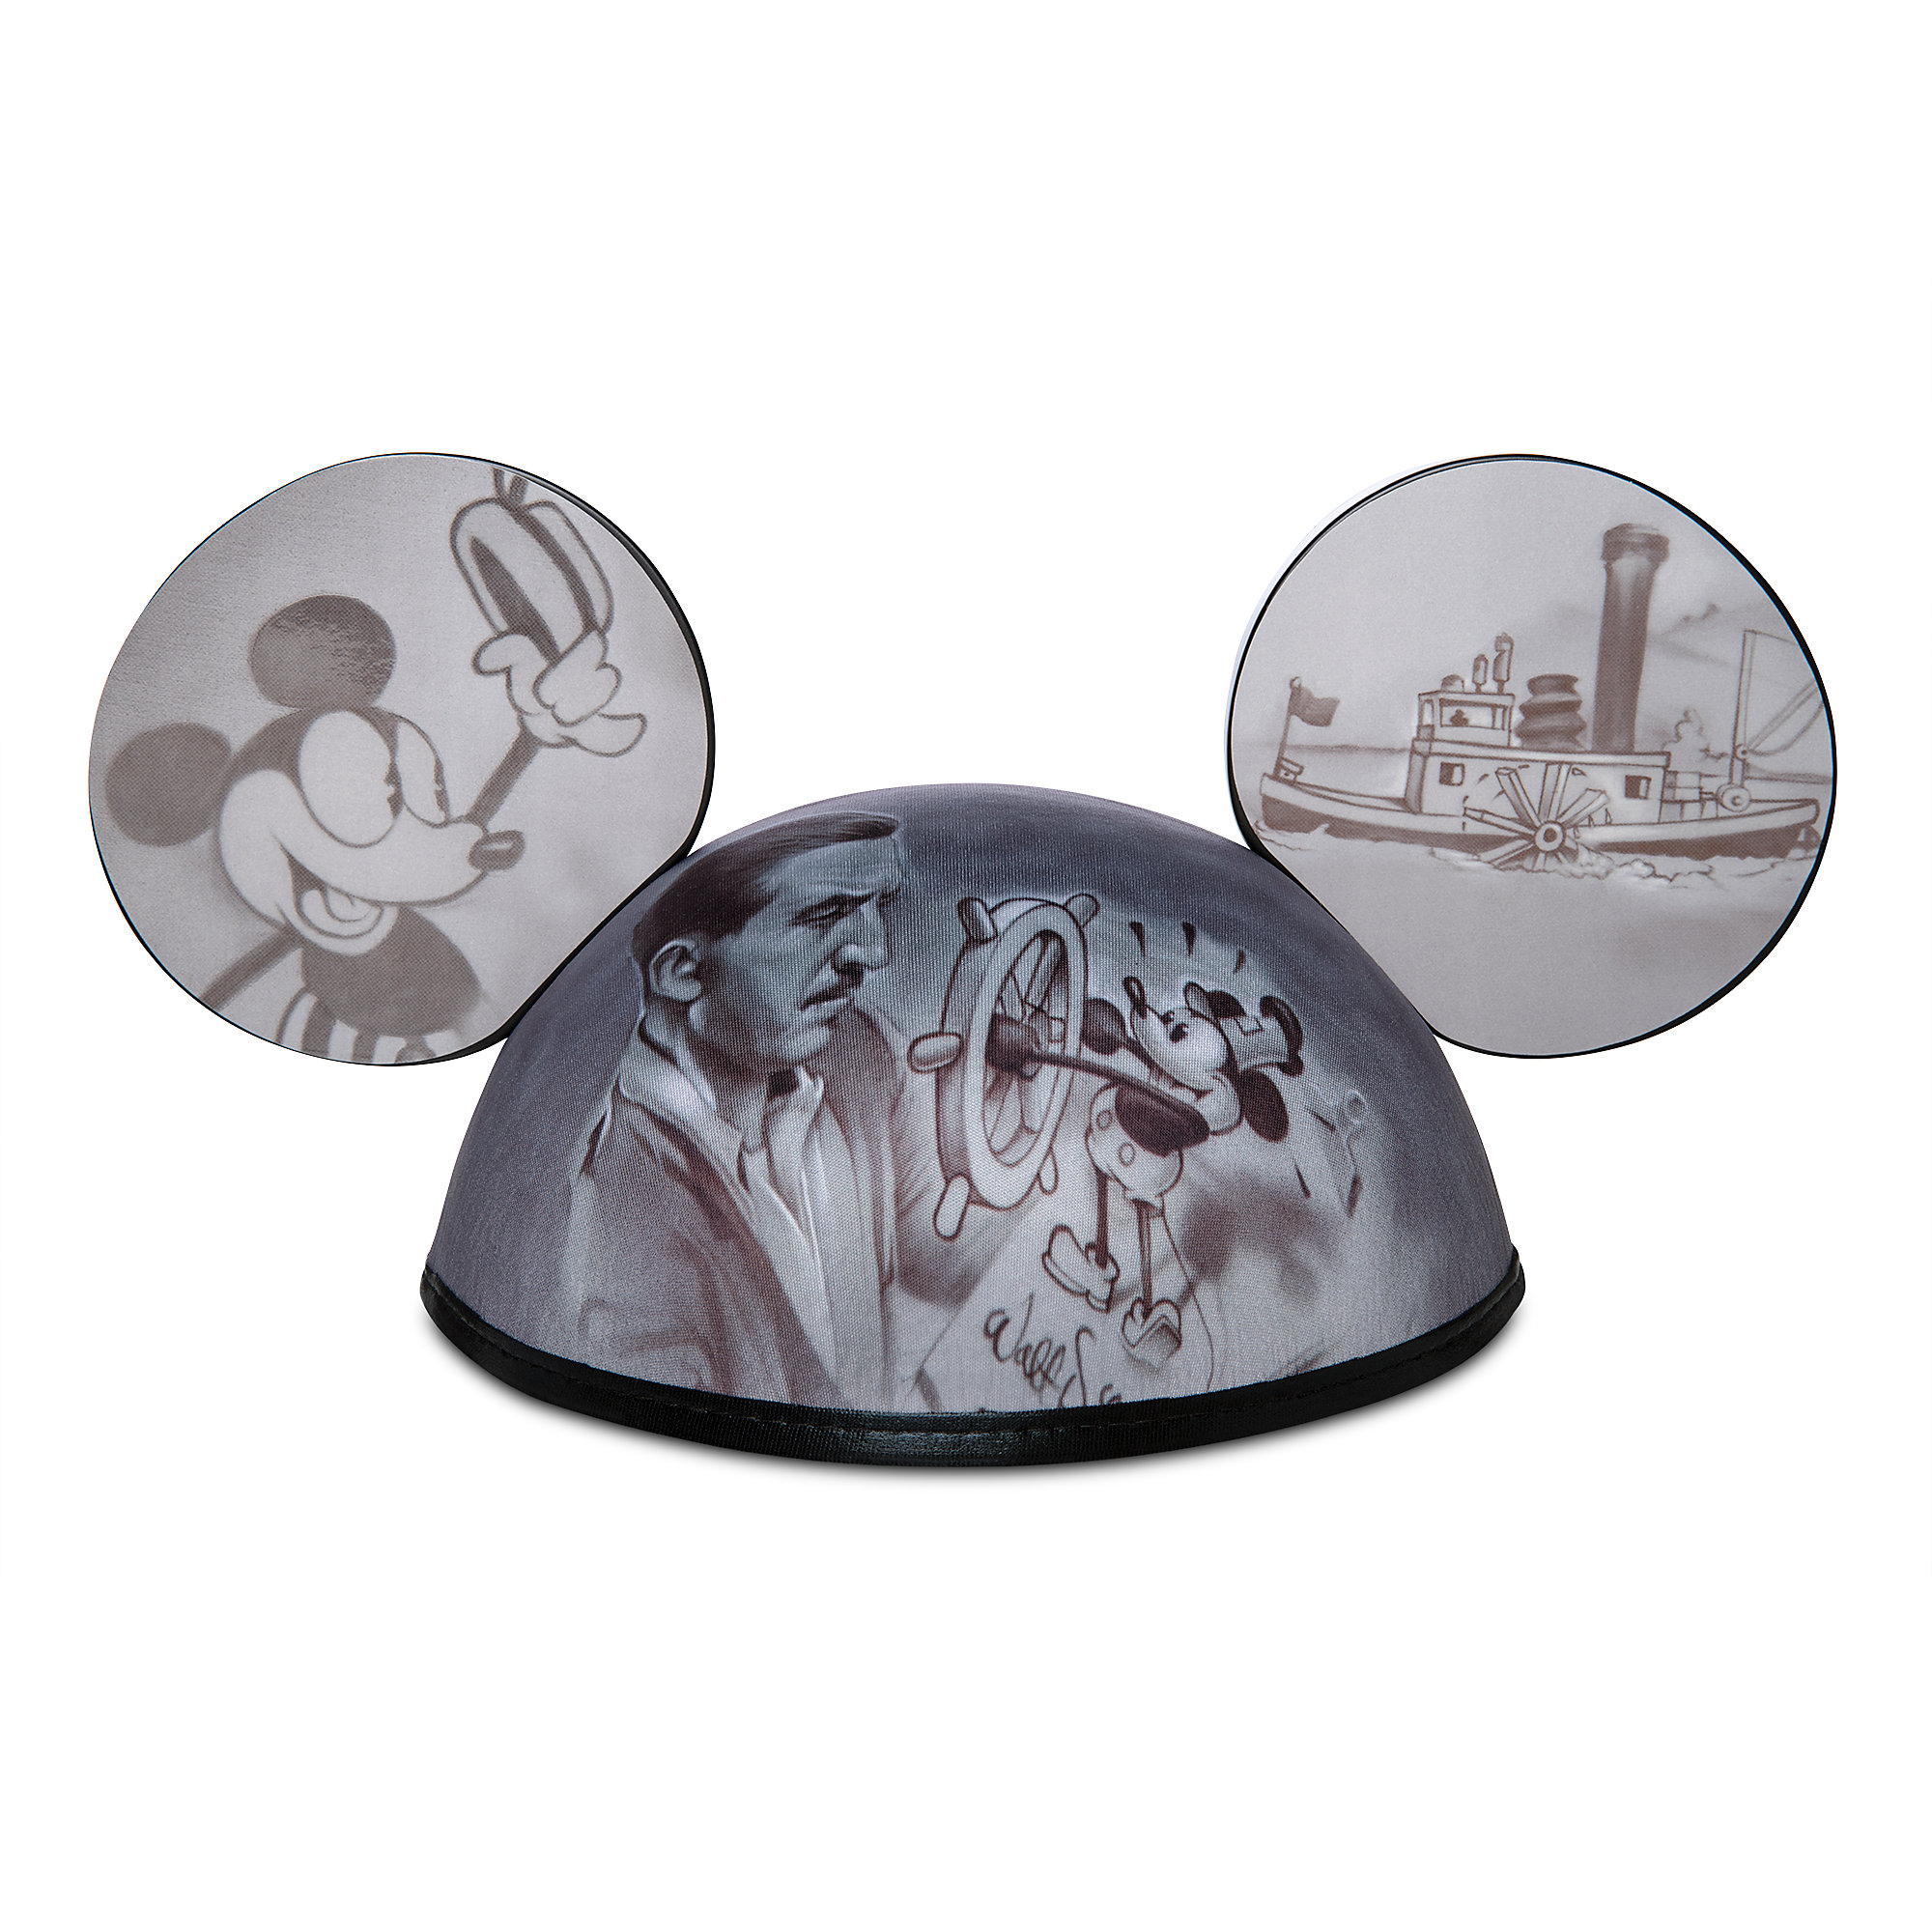 Mickey Mouse Steamboat Willie Ear Hat by Noah is now available online